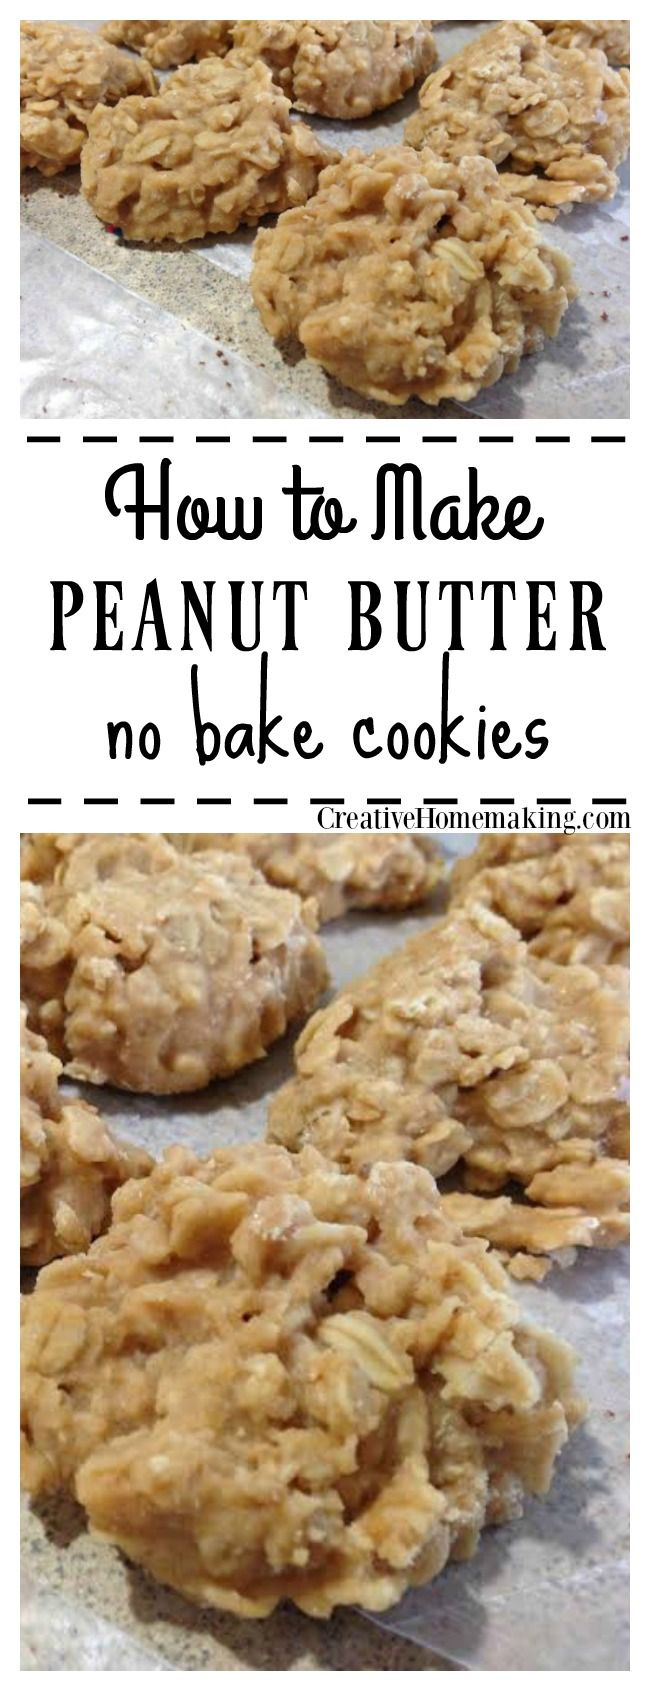 Do you love no-bake chocolate cookies? Try this peanut butter version, they are really good!